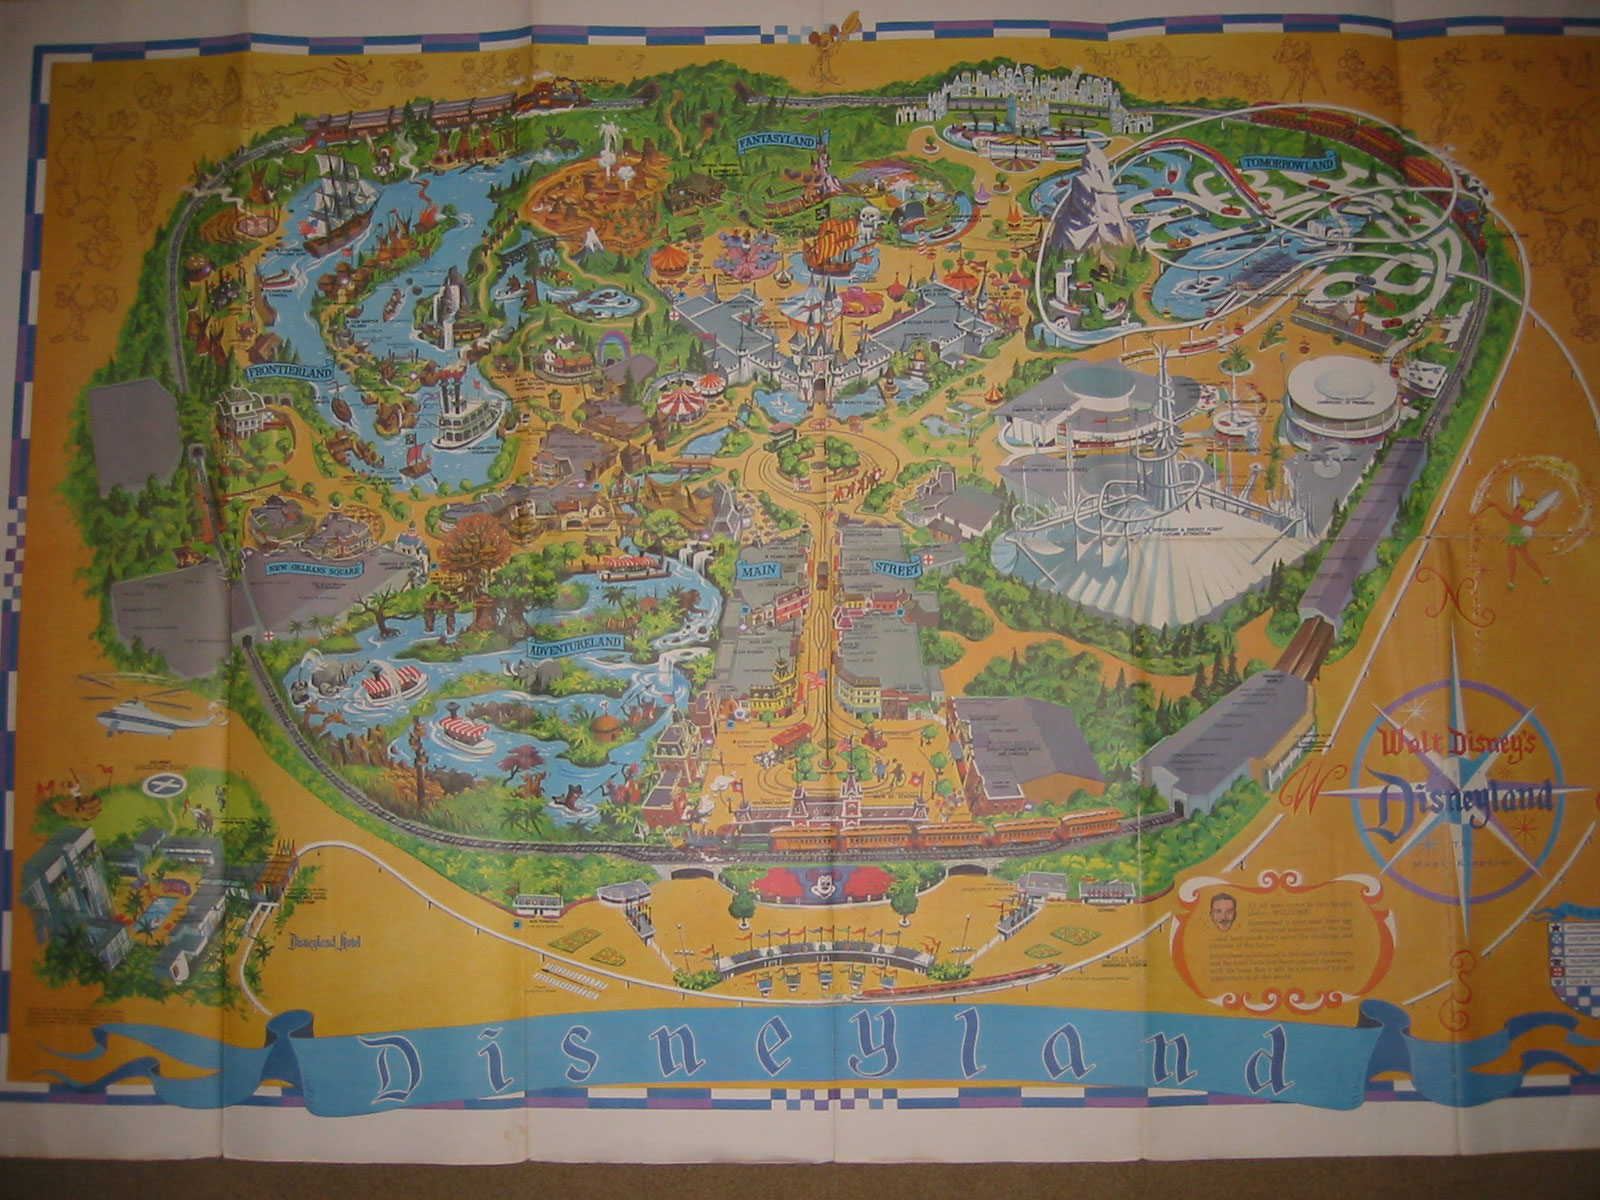 Theme Park Review • Old Disneyland Maps on